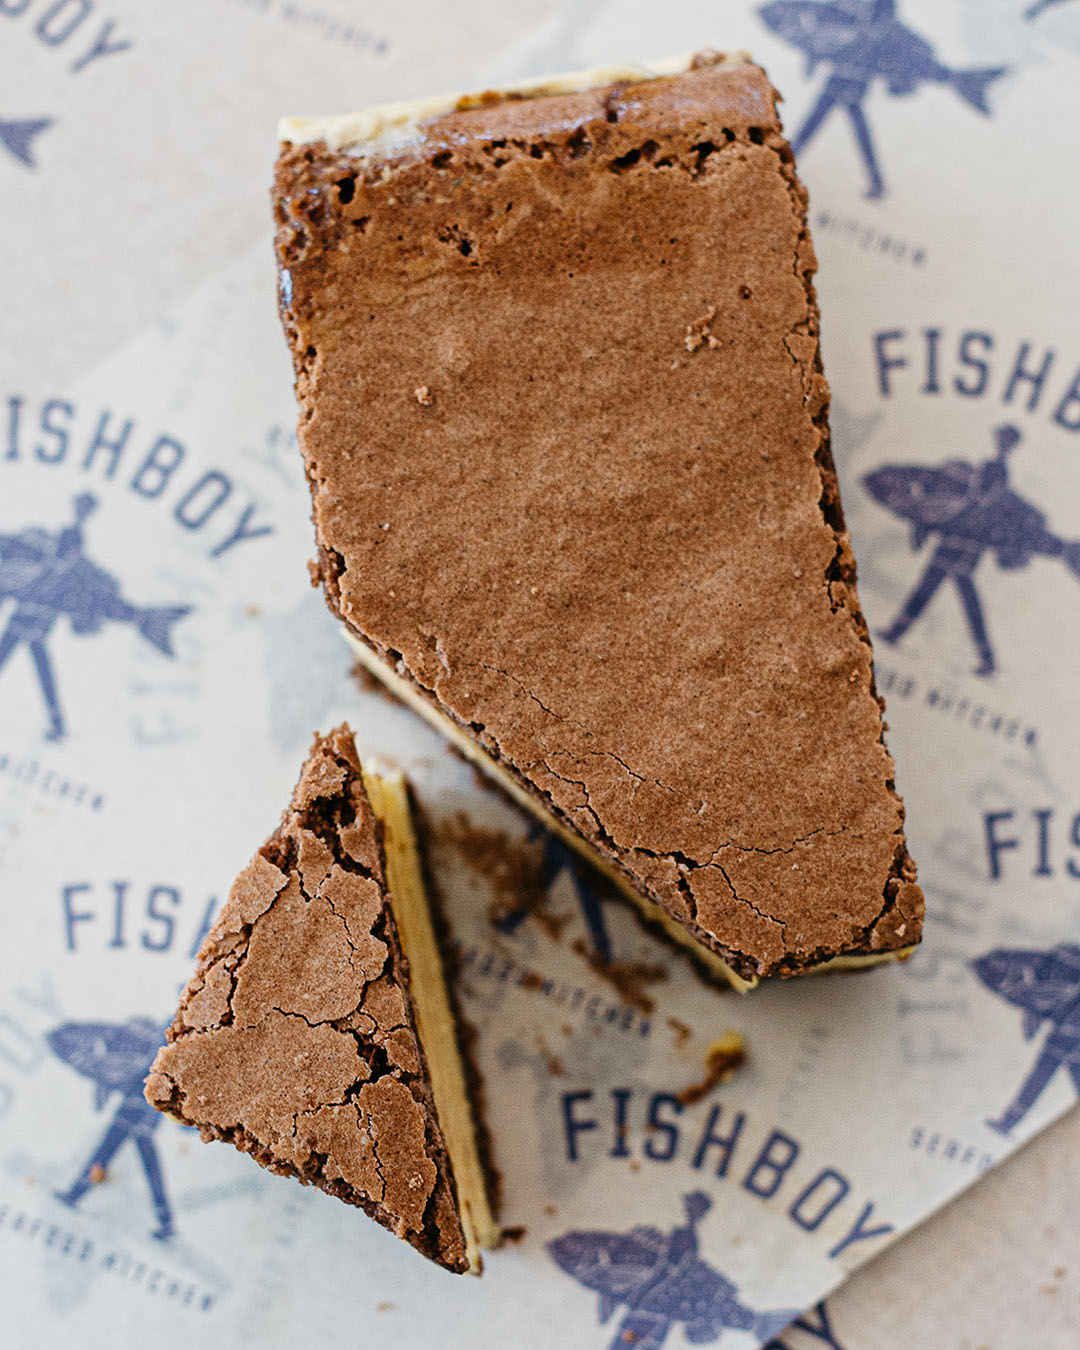 The ice cream sandwich at Fishboy sits on a plate looking delicious.